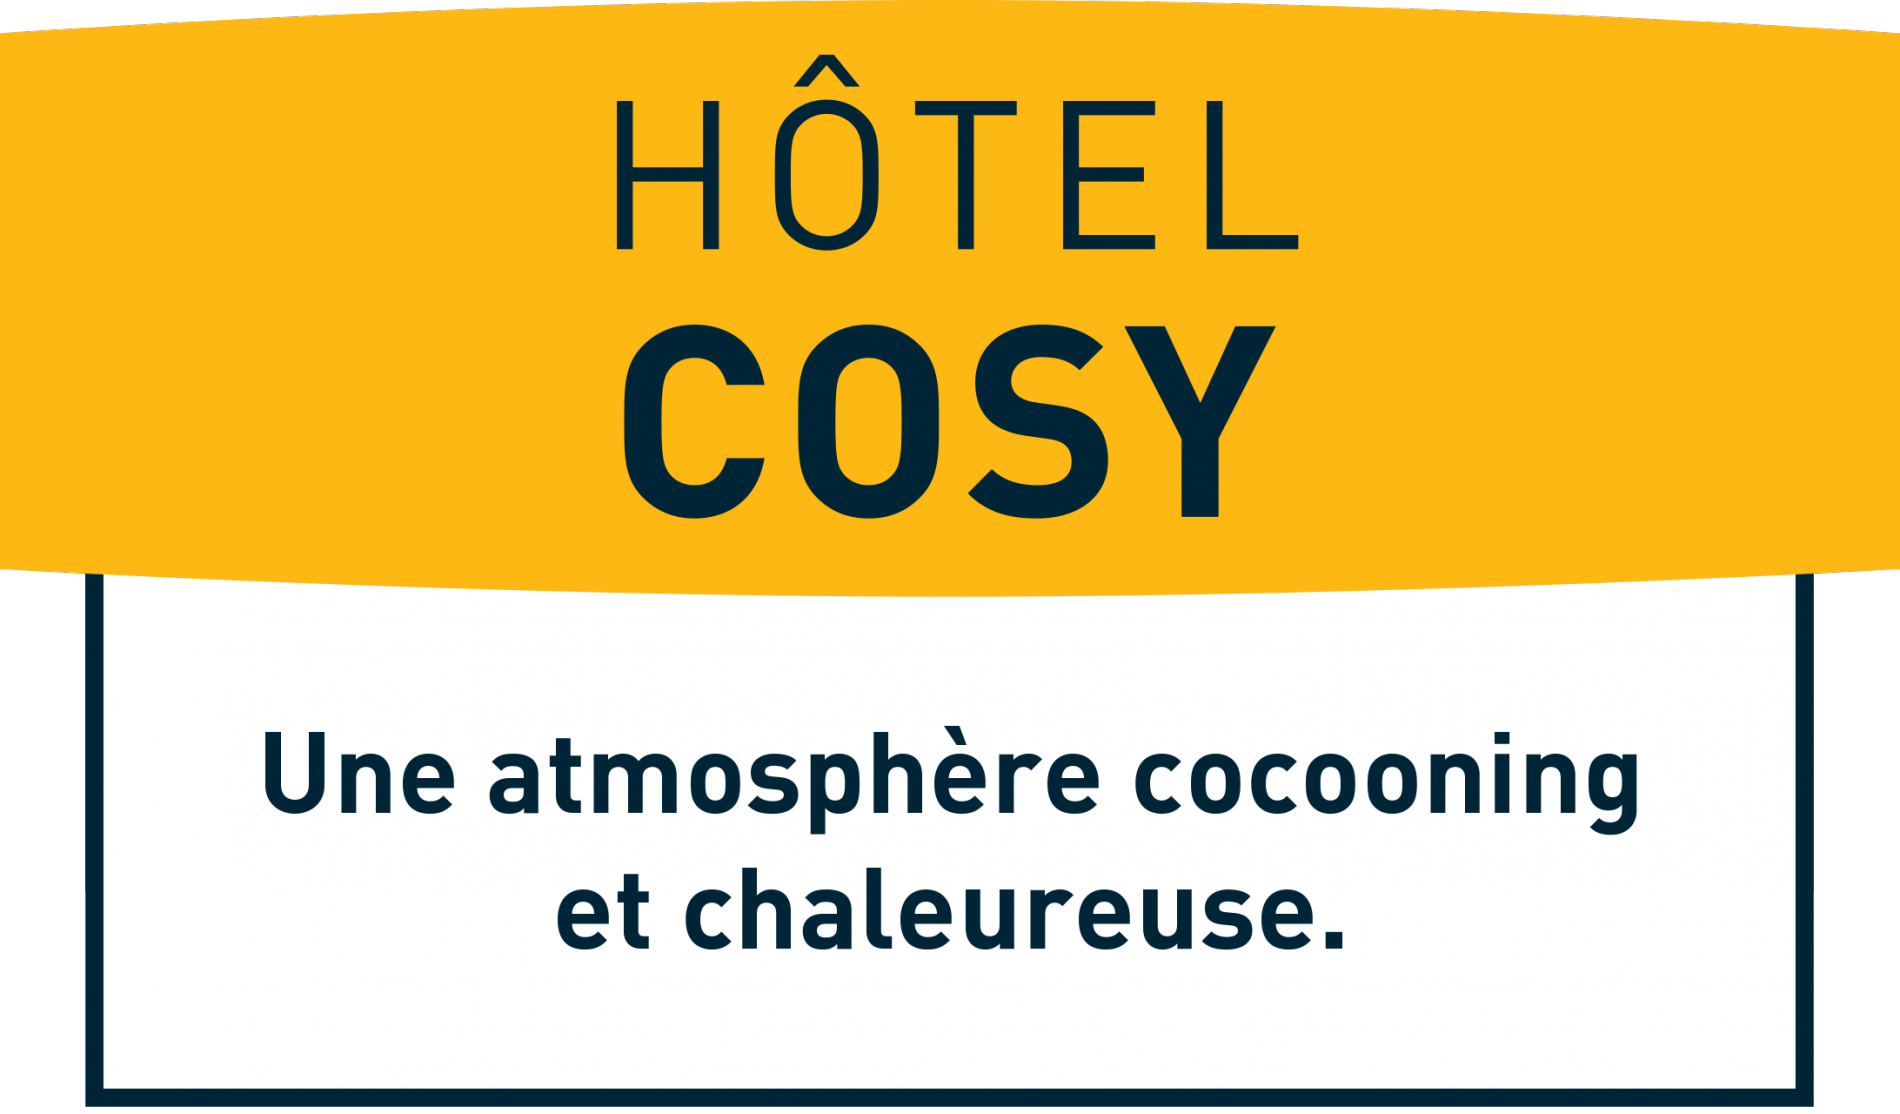 Logis Hotel Cosy Hotel Cote d'Opale